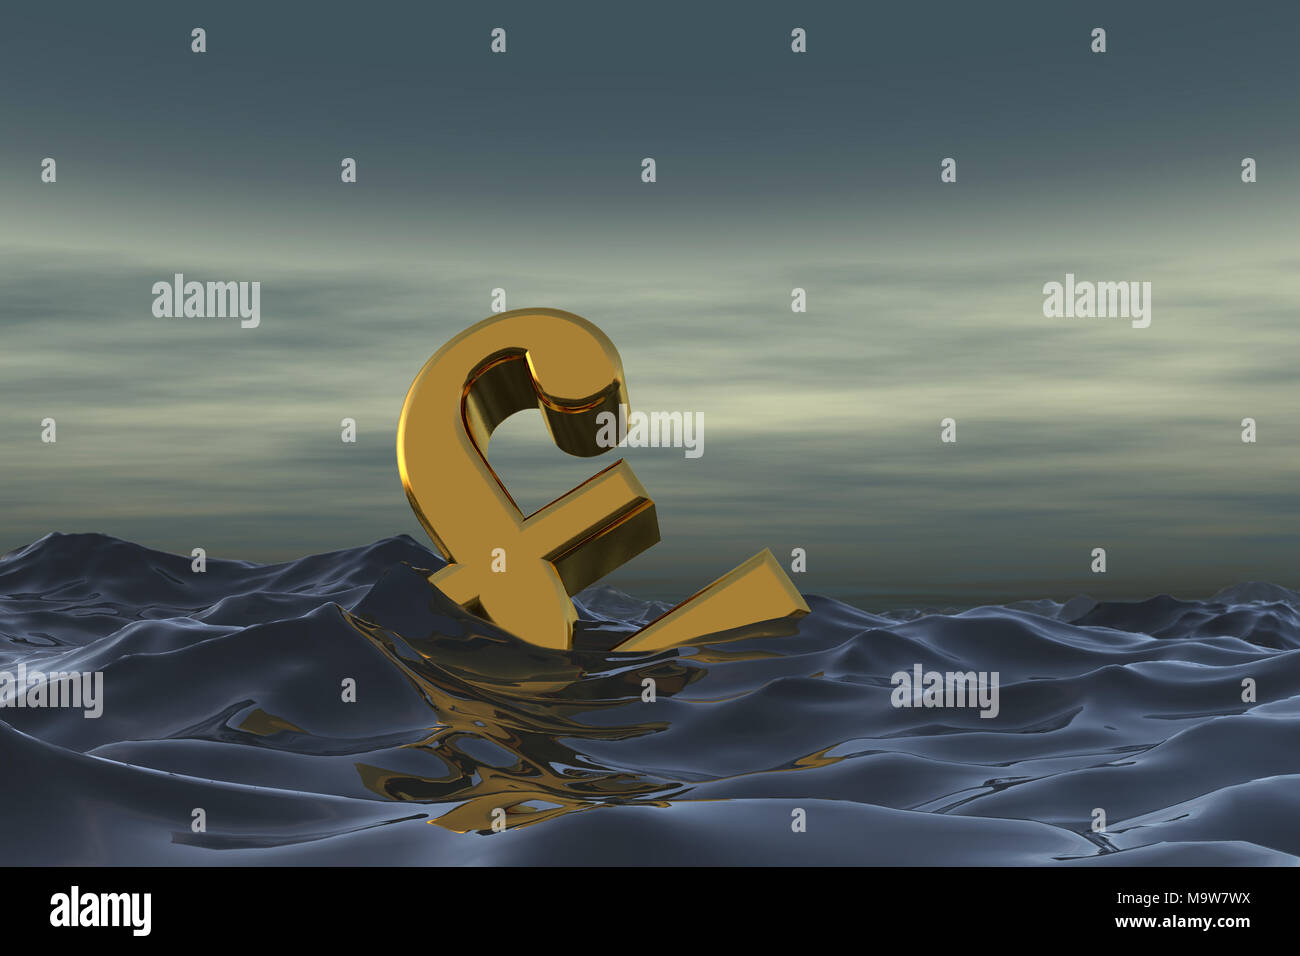 Rescue float stock photos rescue float stock images page 17 alamy british pound sterling symbol at sea drowning in debt financial problem concept 3d rendering biocorpaavc Gallery